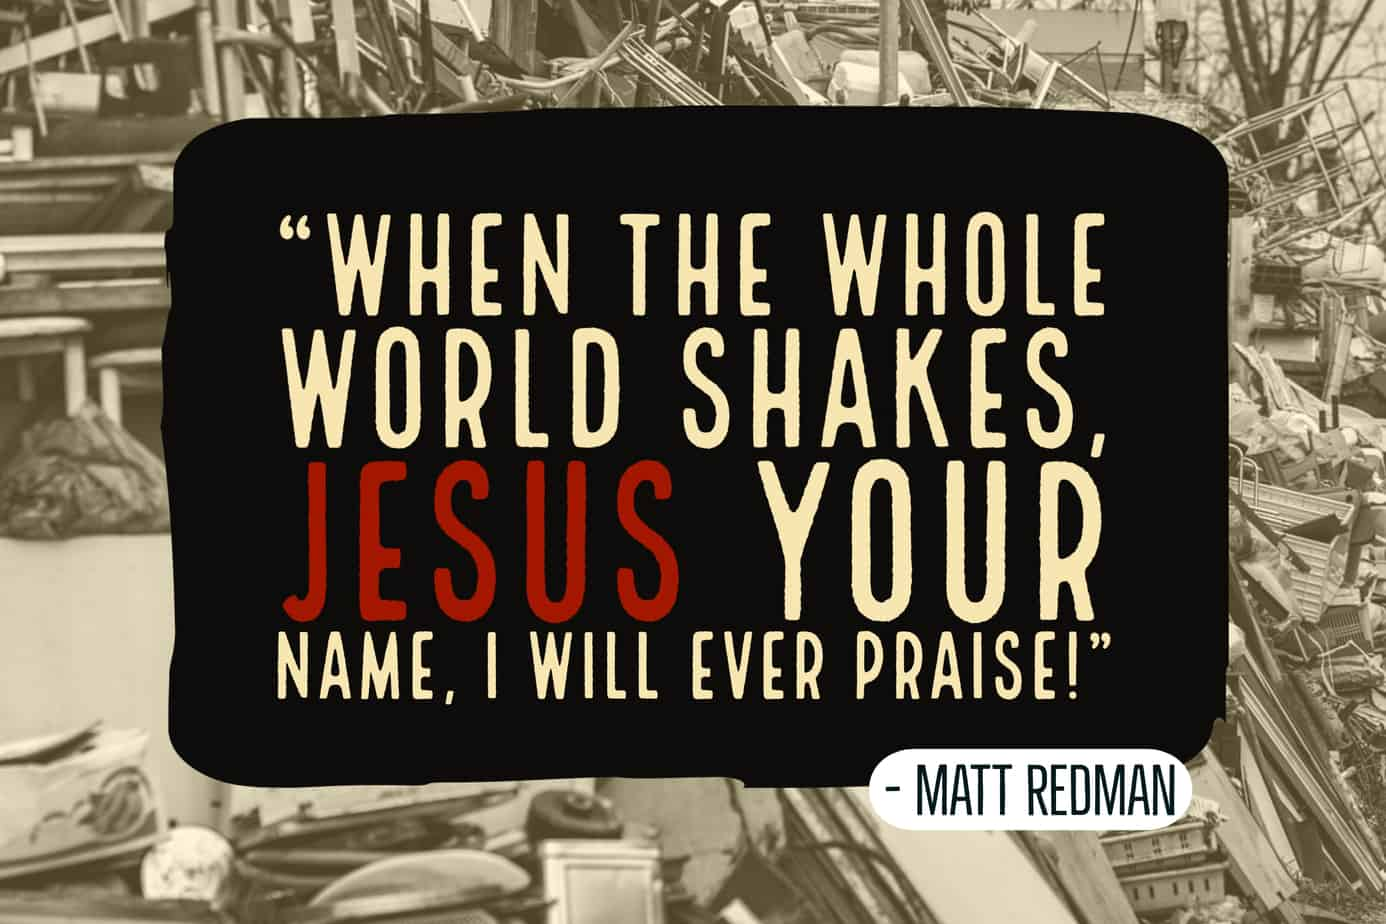 Matt Redman song, 'Jesus Your Name' couldn't be more timely, as 'whole world shakes'